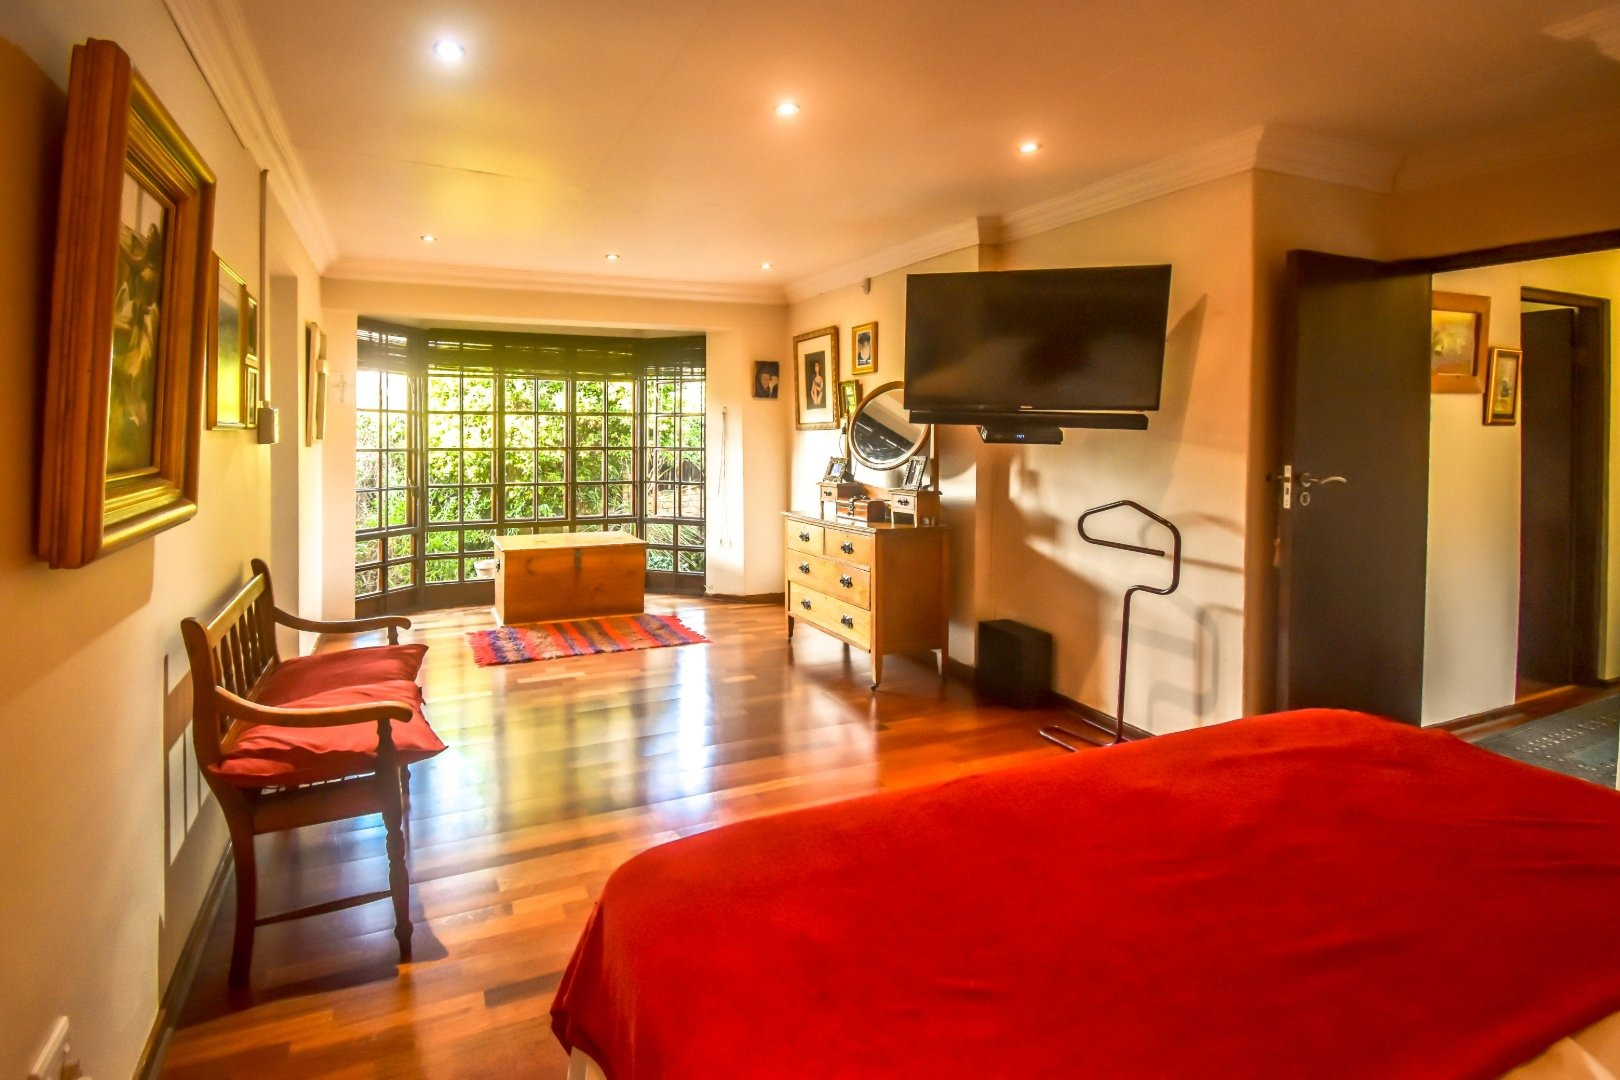 3 Bedroom House For Sale in Bergbron